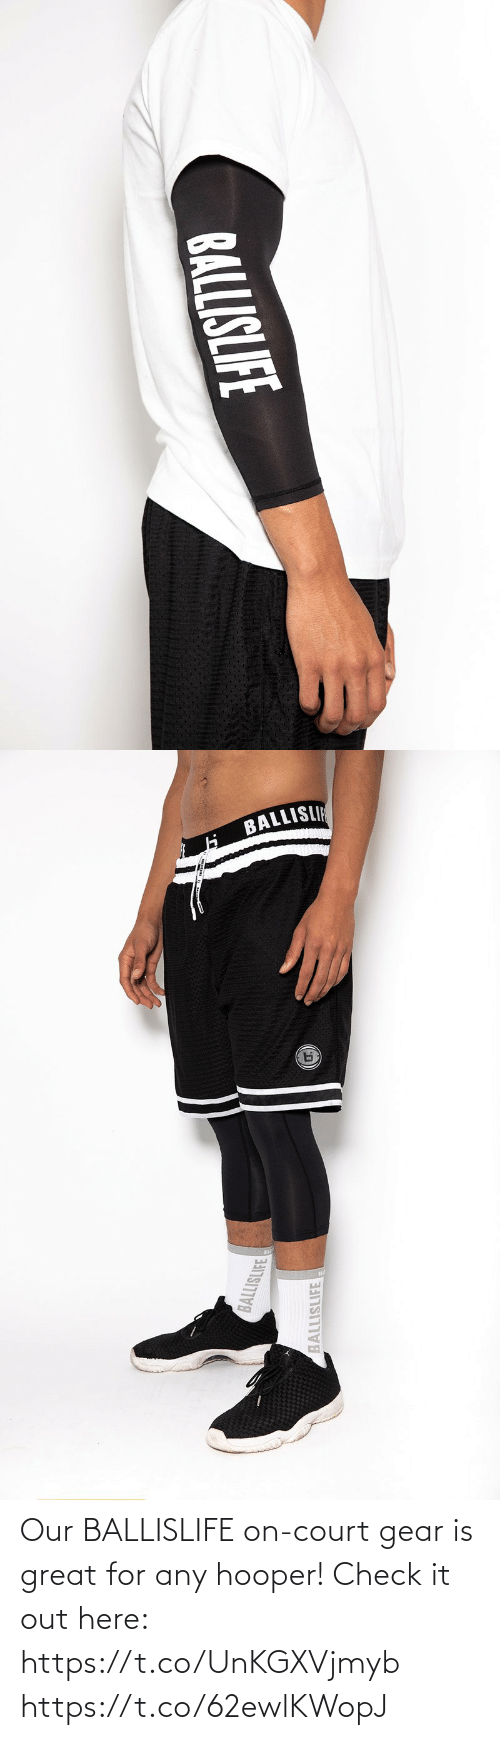 court: Our BALLISLIFE on-court gear is great for any hooper!  Check it out here: https://t.co/UnKGXVjmyb https://t.co/62ewlKWopJ